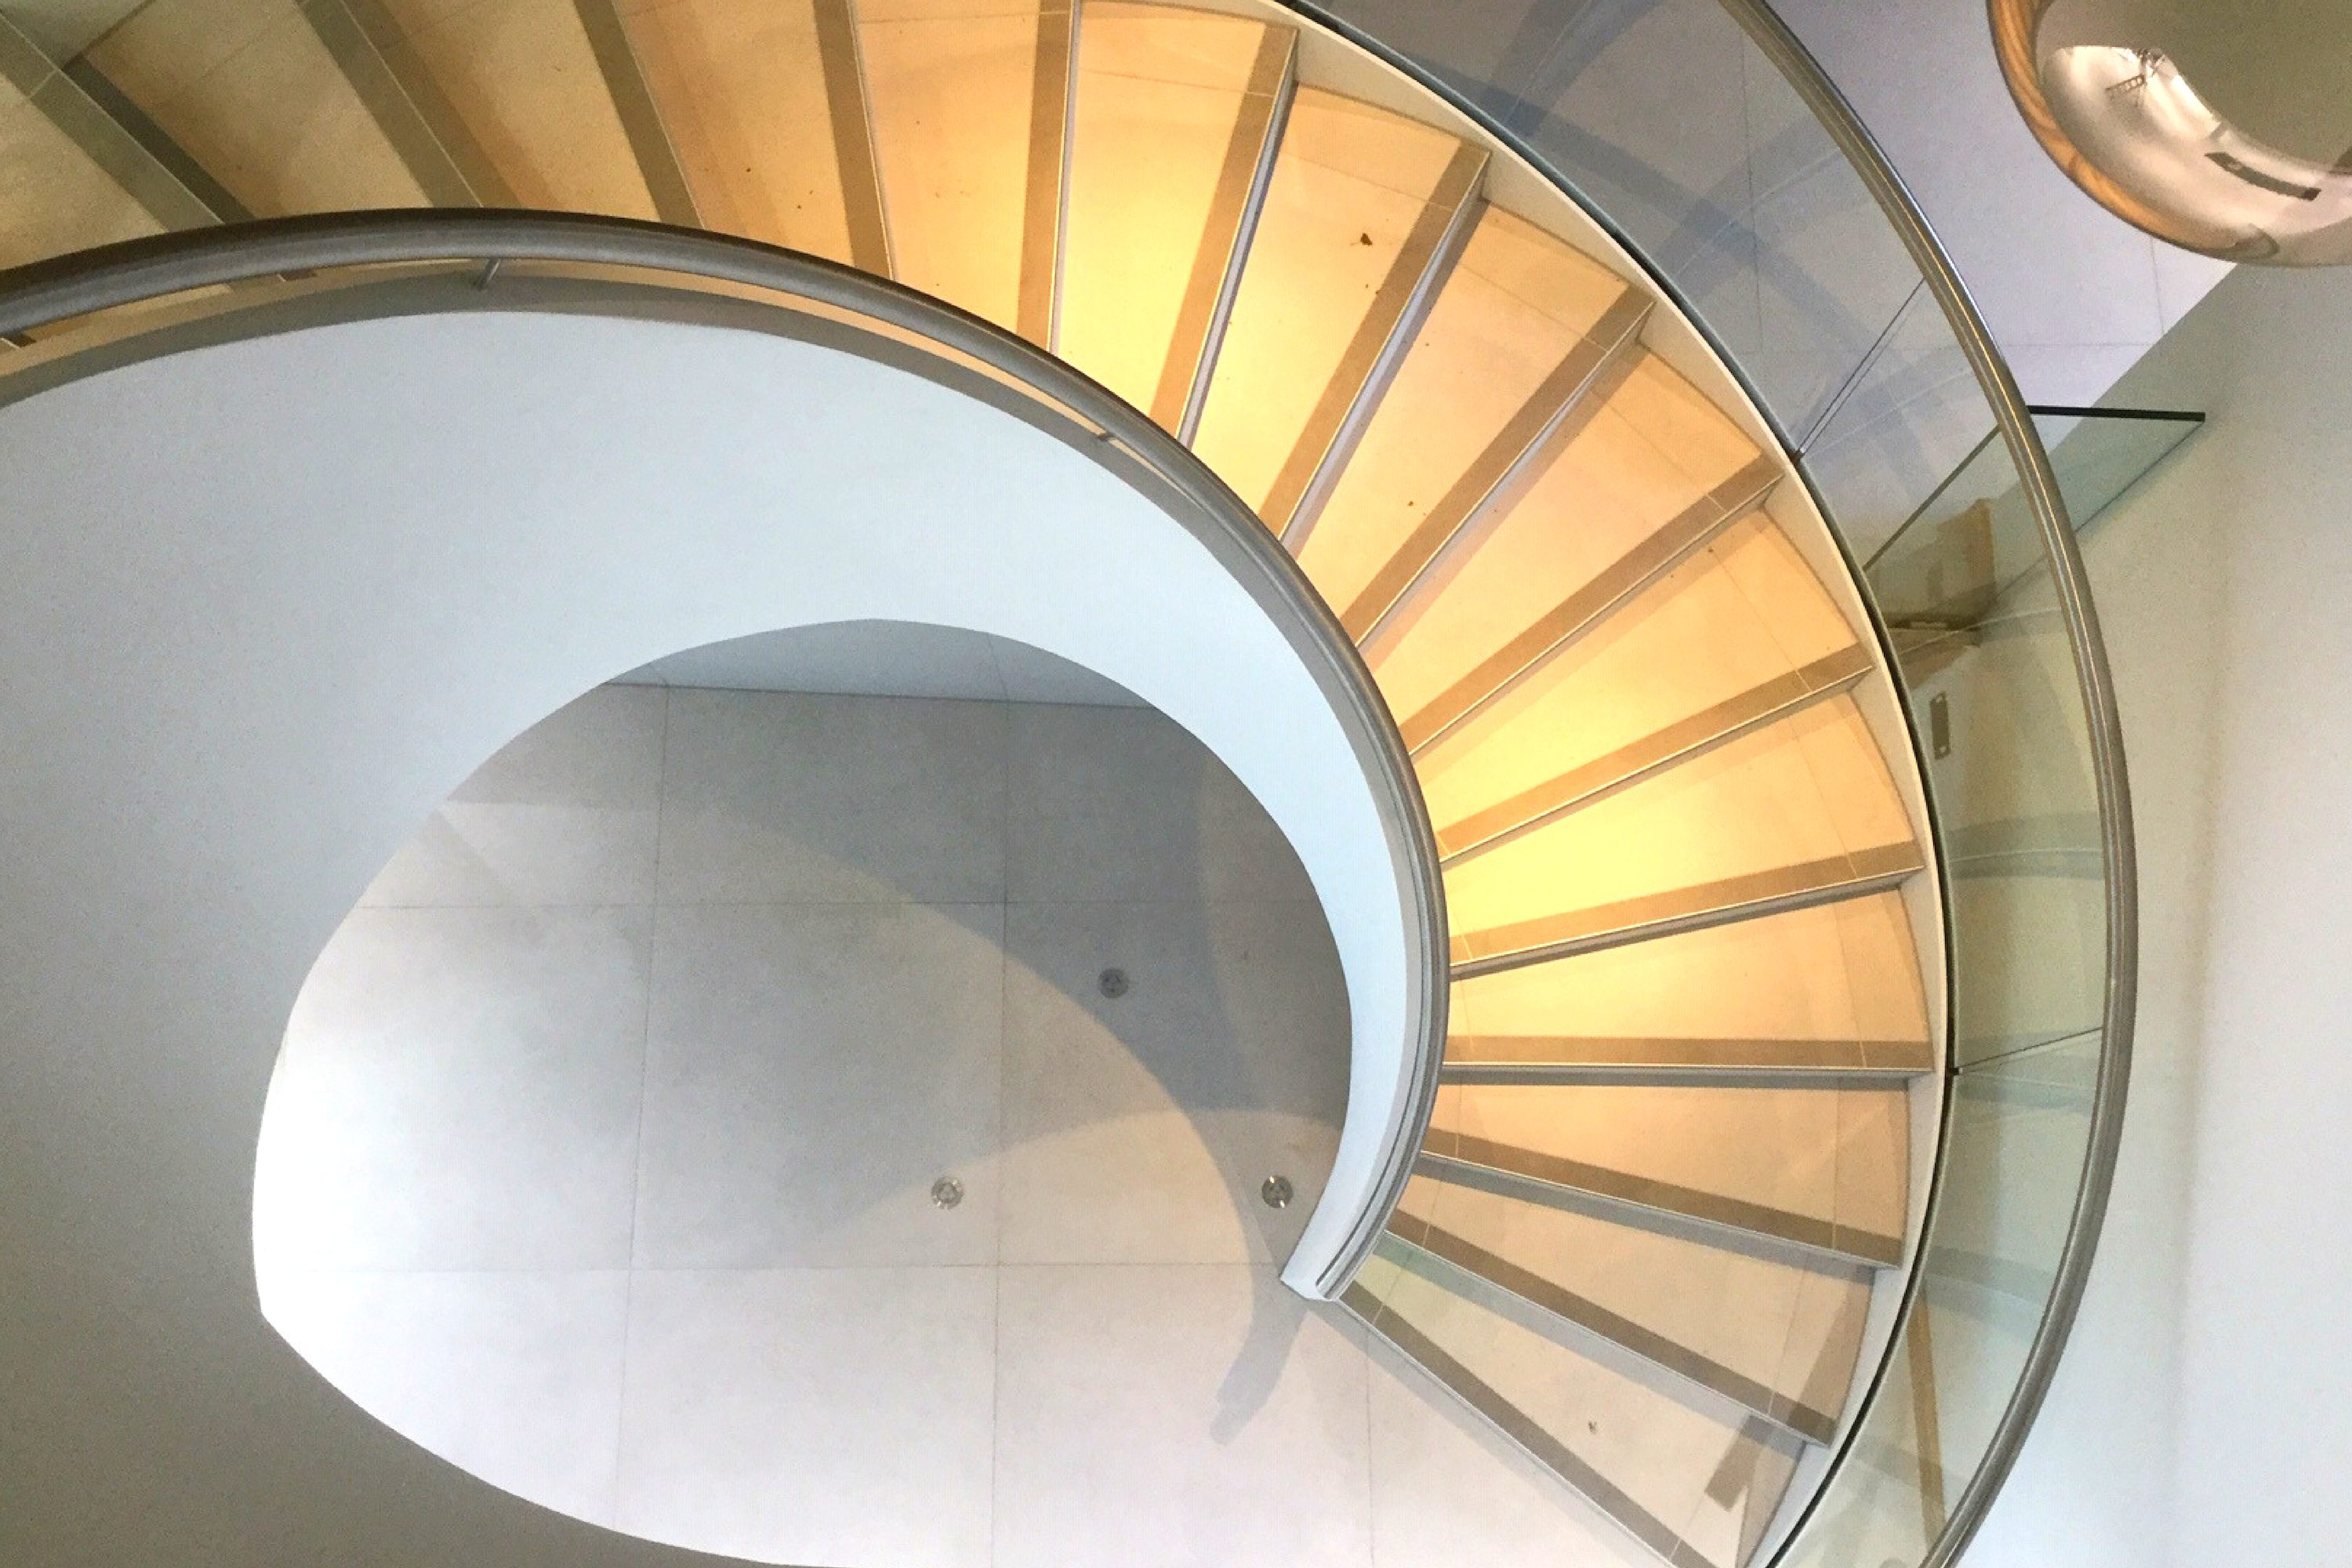 Curve of a commercial helical stair